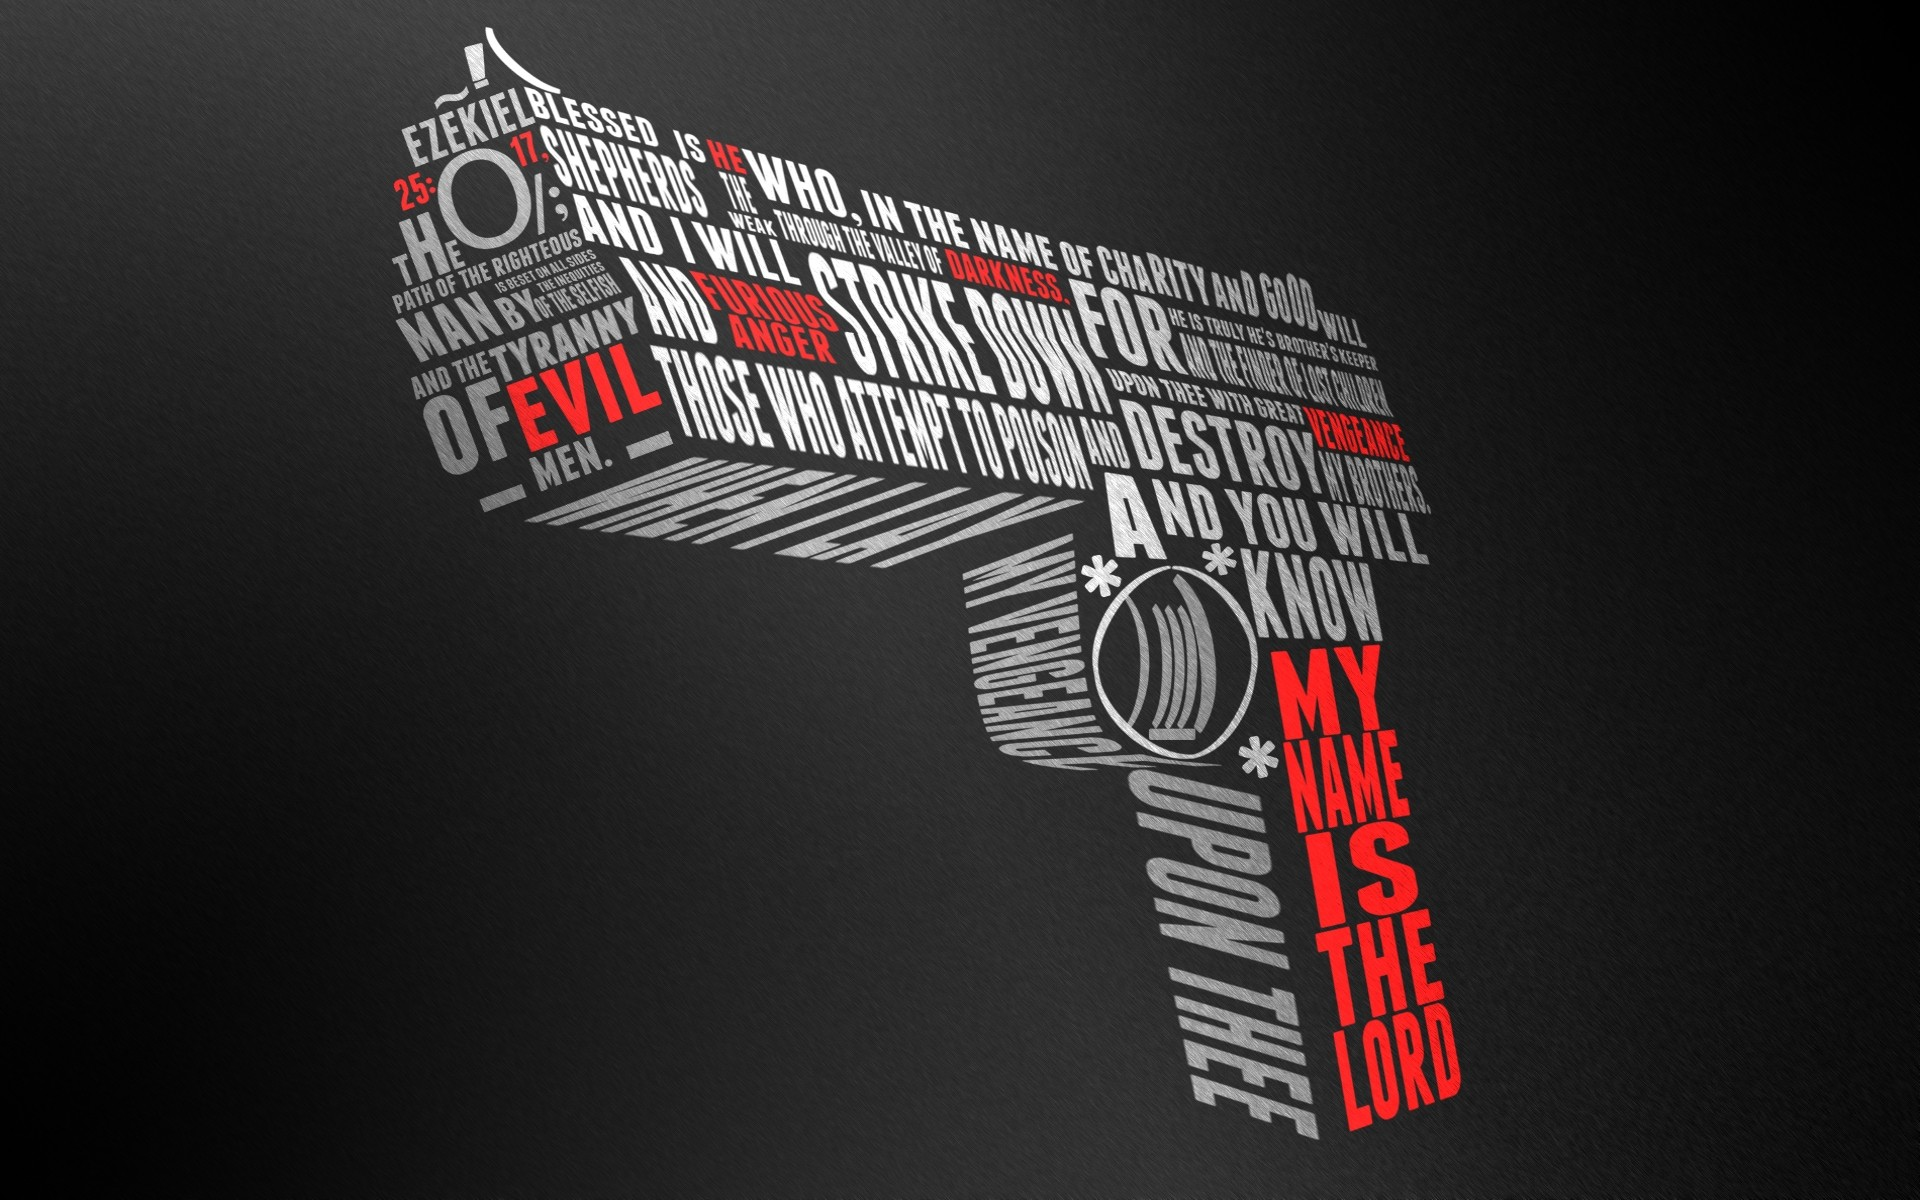 55 Gun Wallpapers 1 Download Free High Resolution For